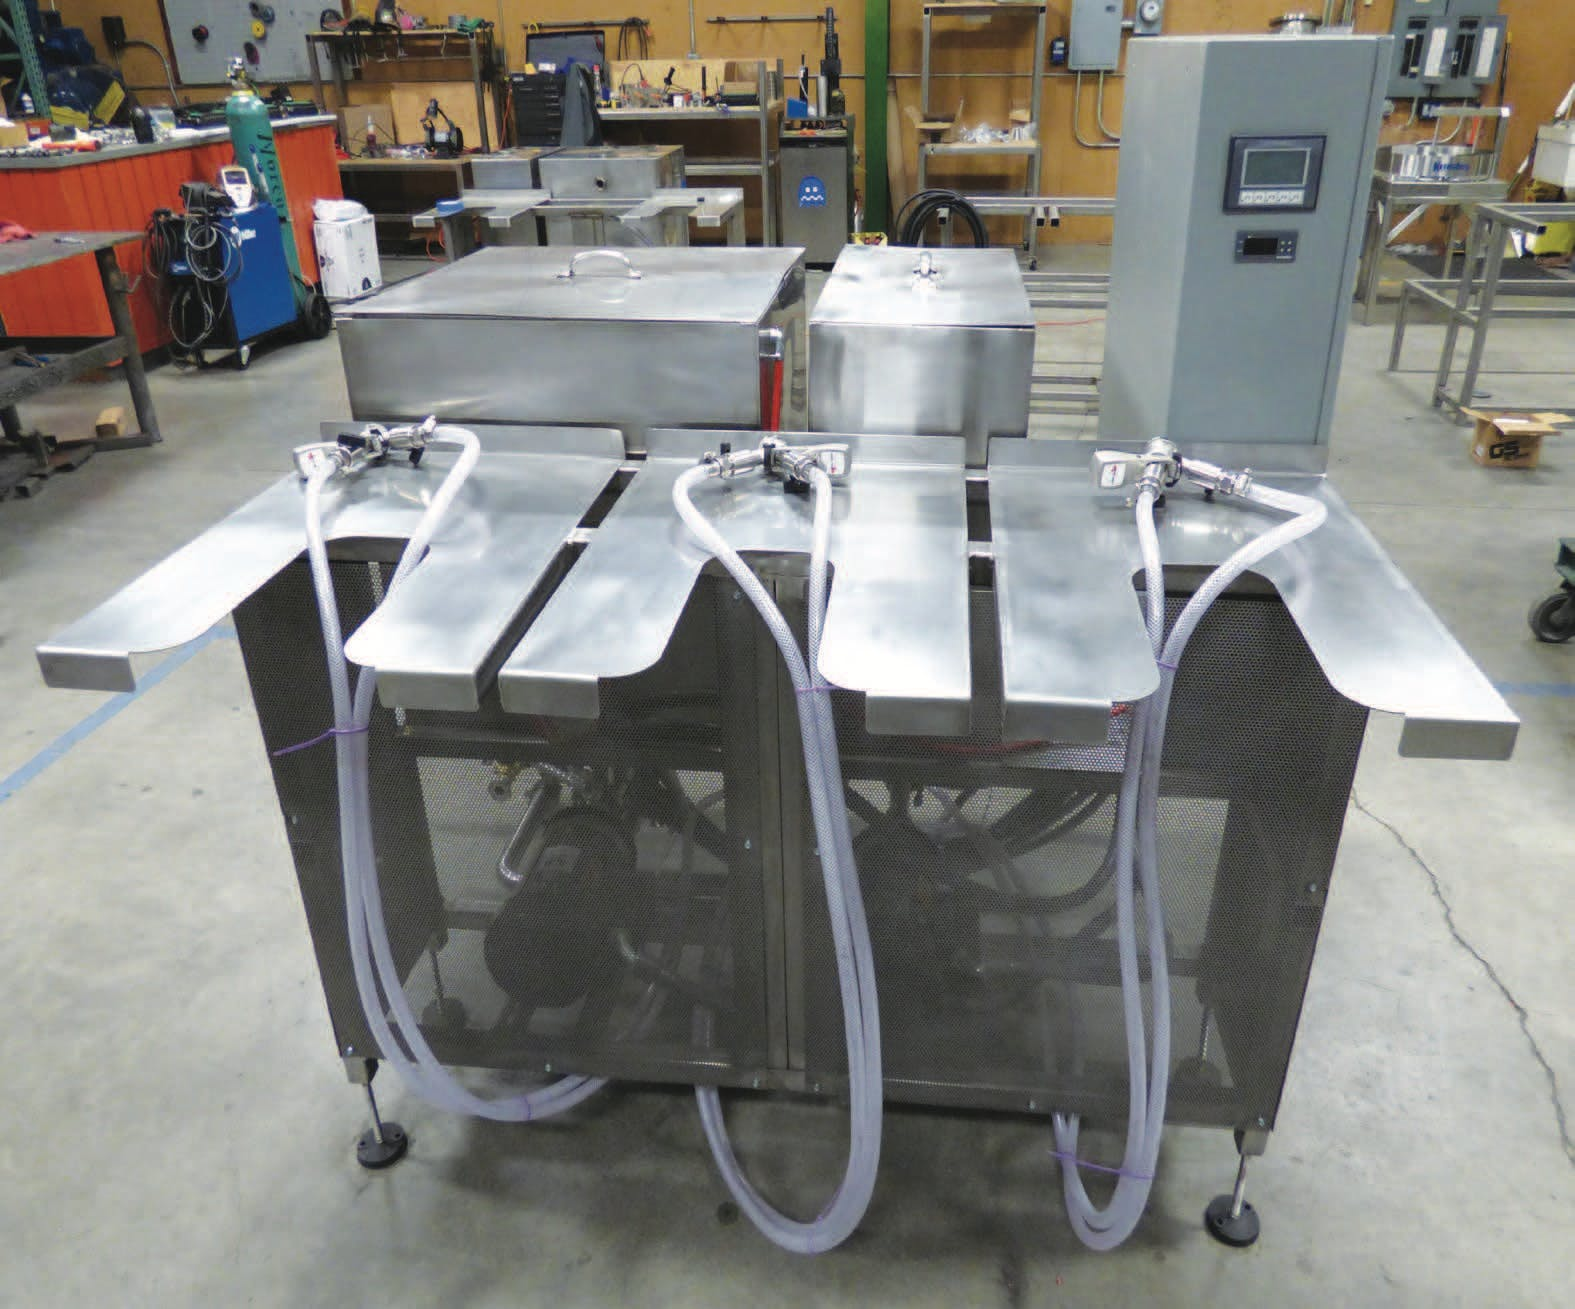 SAKW15 - Semi Automatic Tri-Station Keg Washer Keg washer sold by WeCan Brewing Systems